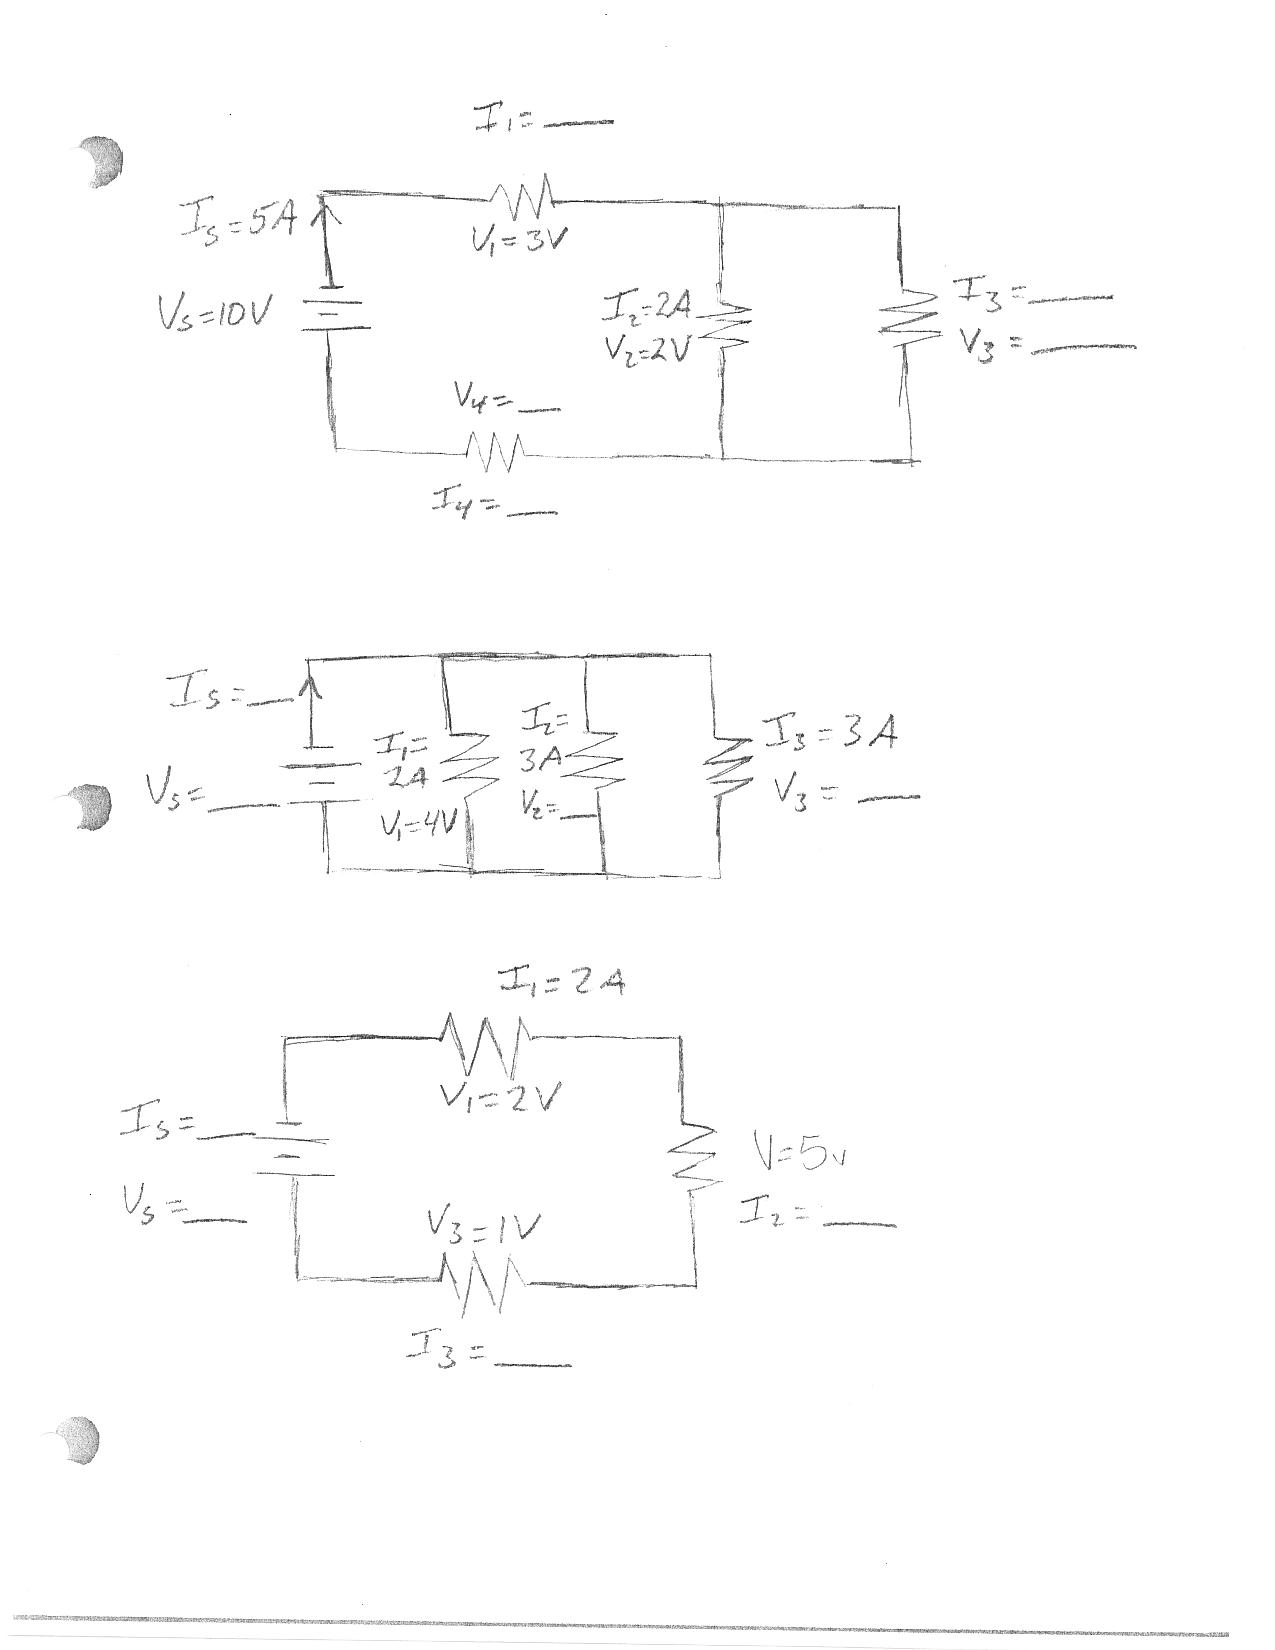 series parallel circuit worksheet  plustheapp, wiring diagram